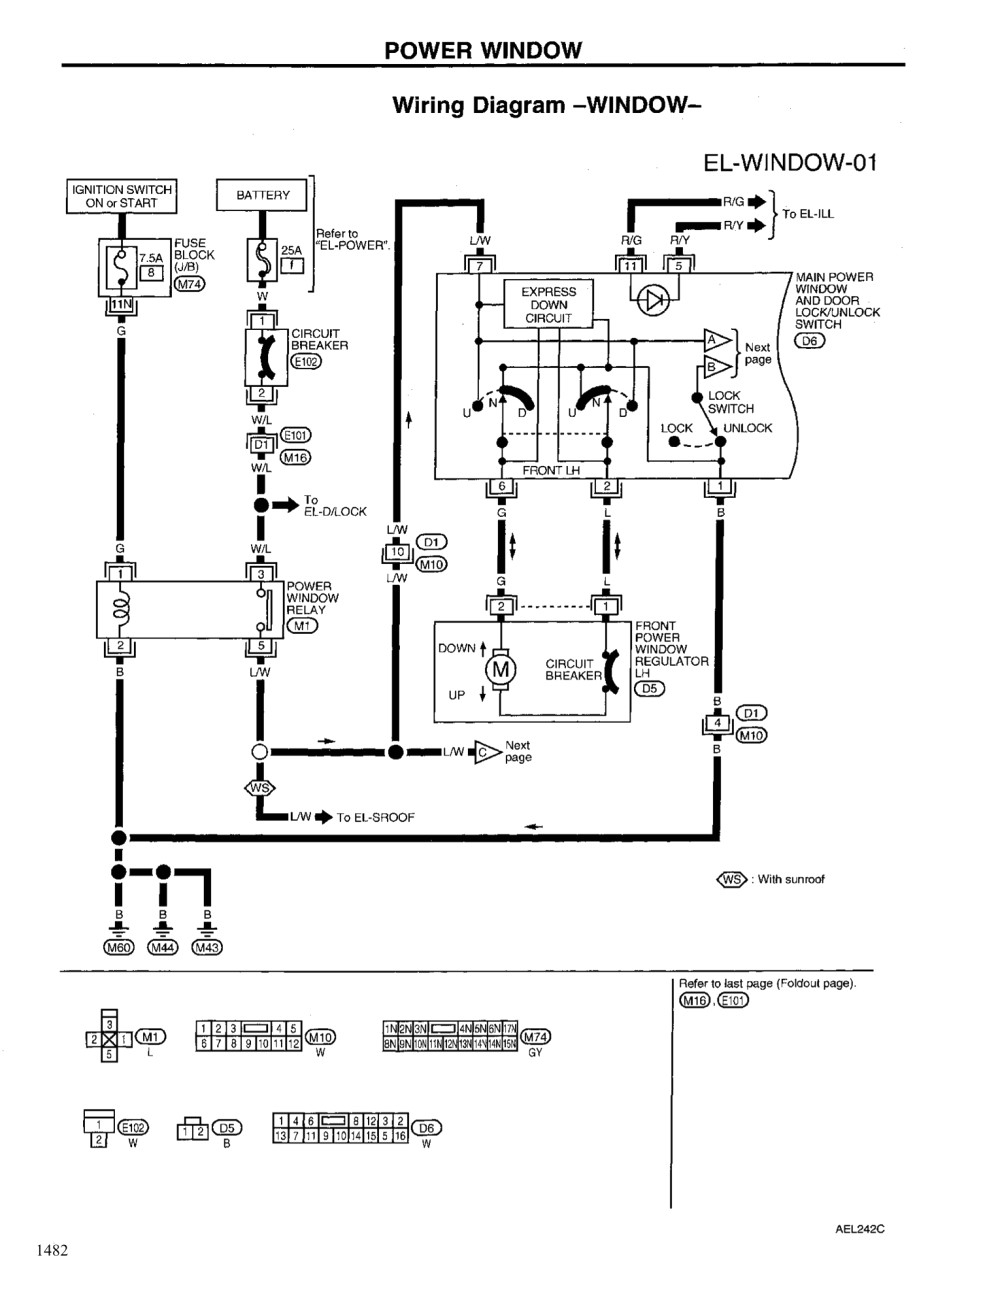 power windows wiring diagram Download-2004 Nissan Altima Power Window Wiring Diagrams Schematics 12-k